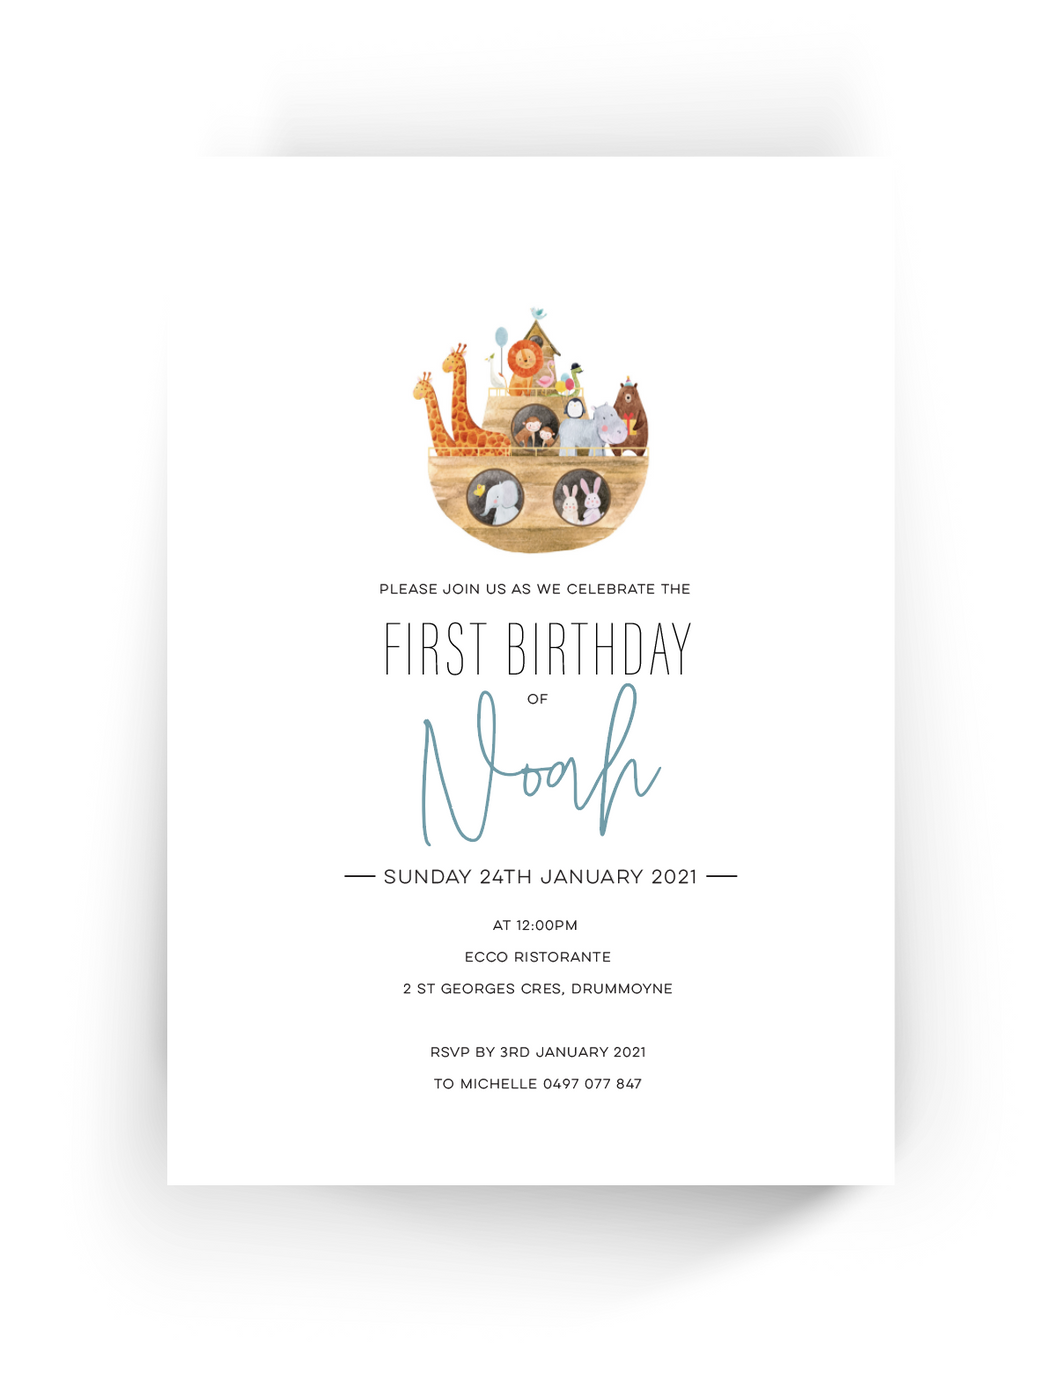 'Noah' First Birthday Invitation